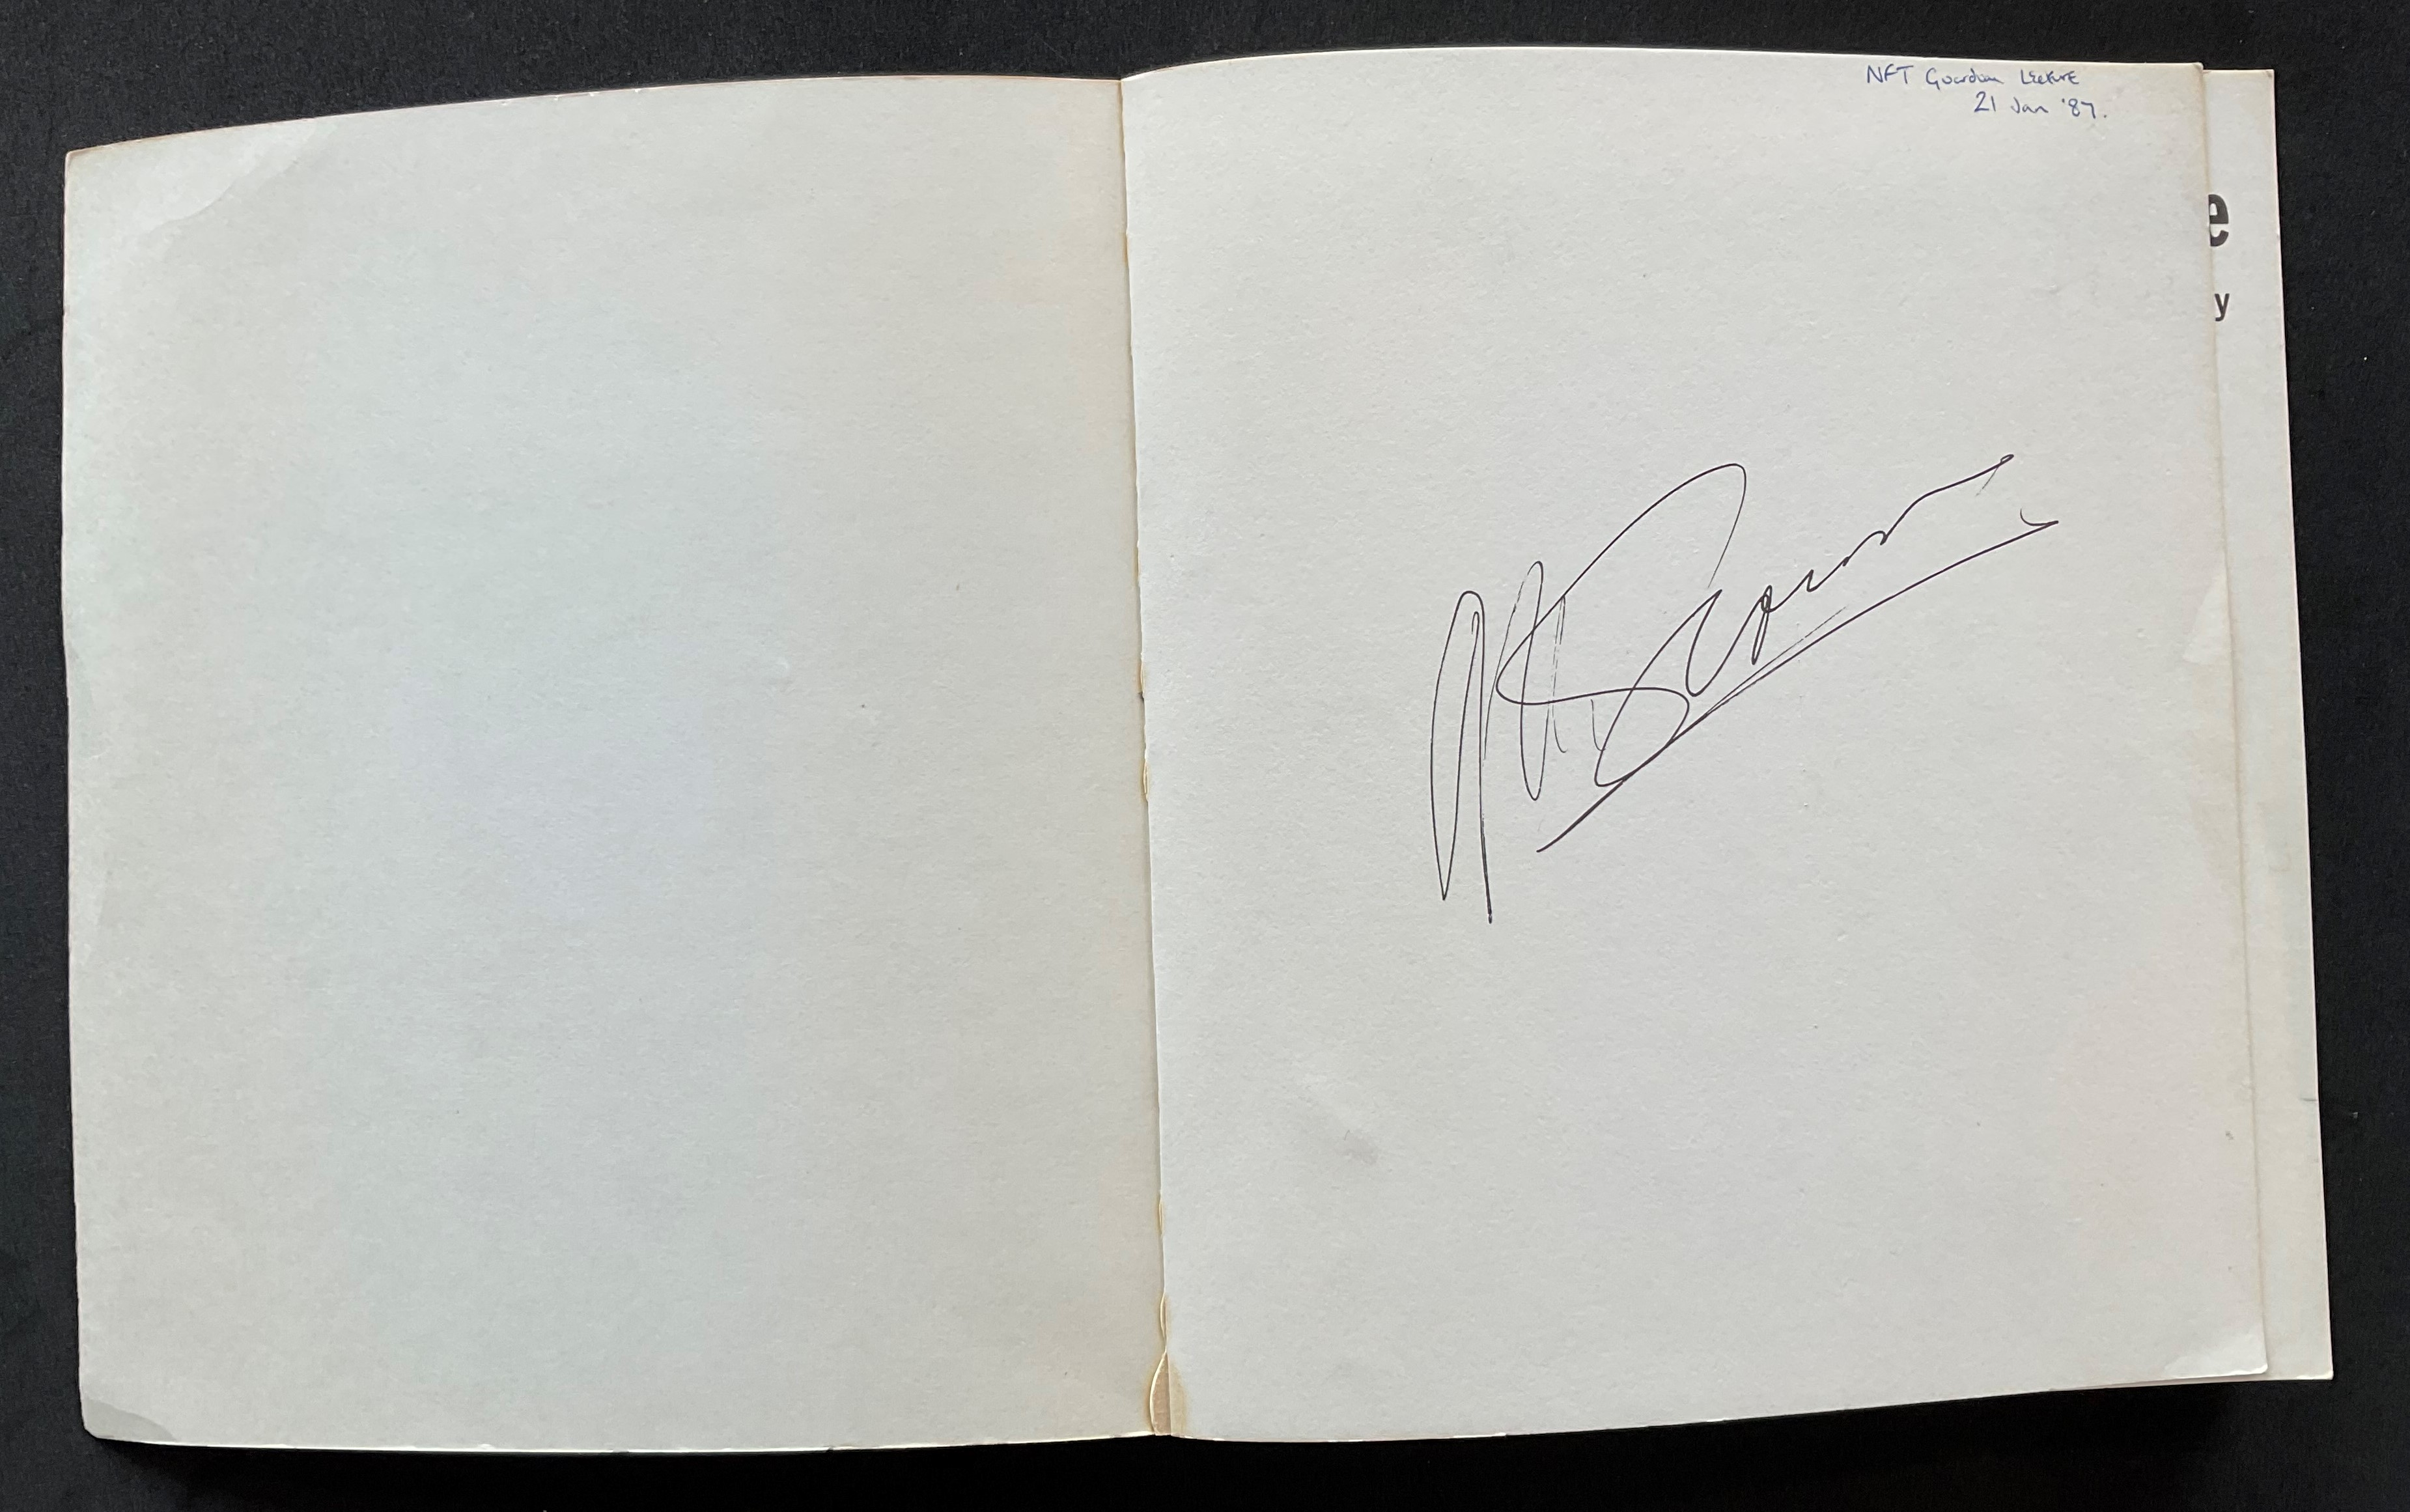 Actor and Director Martin Scorseses biography The First Decade signed on the first page. An - Image 2 of 3